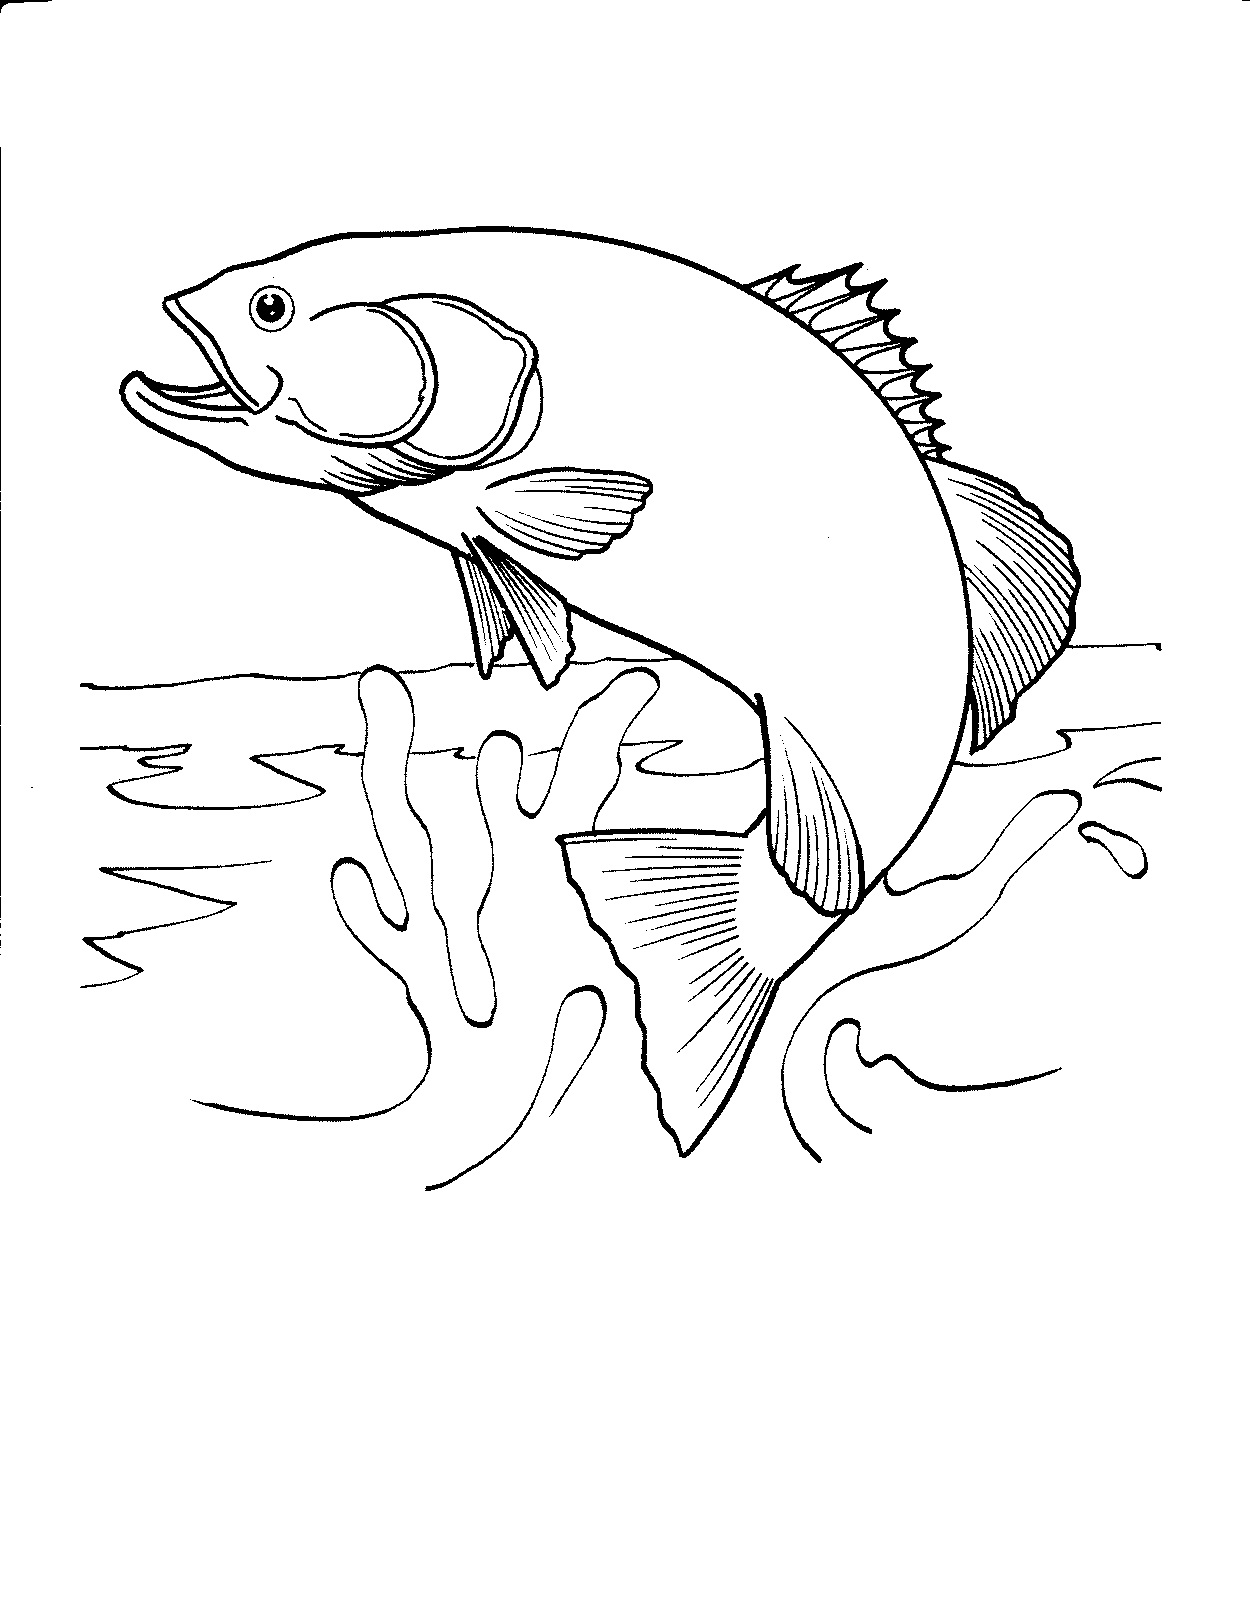 Printable coloring pages rainbow fish - Realistic Fish Coloring Pages